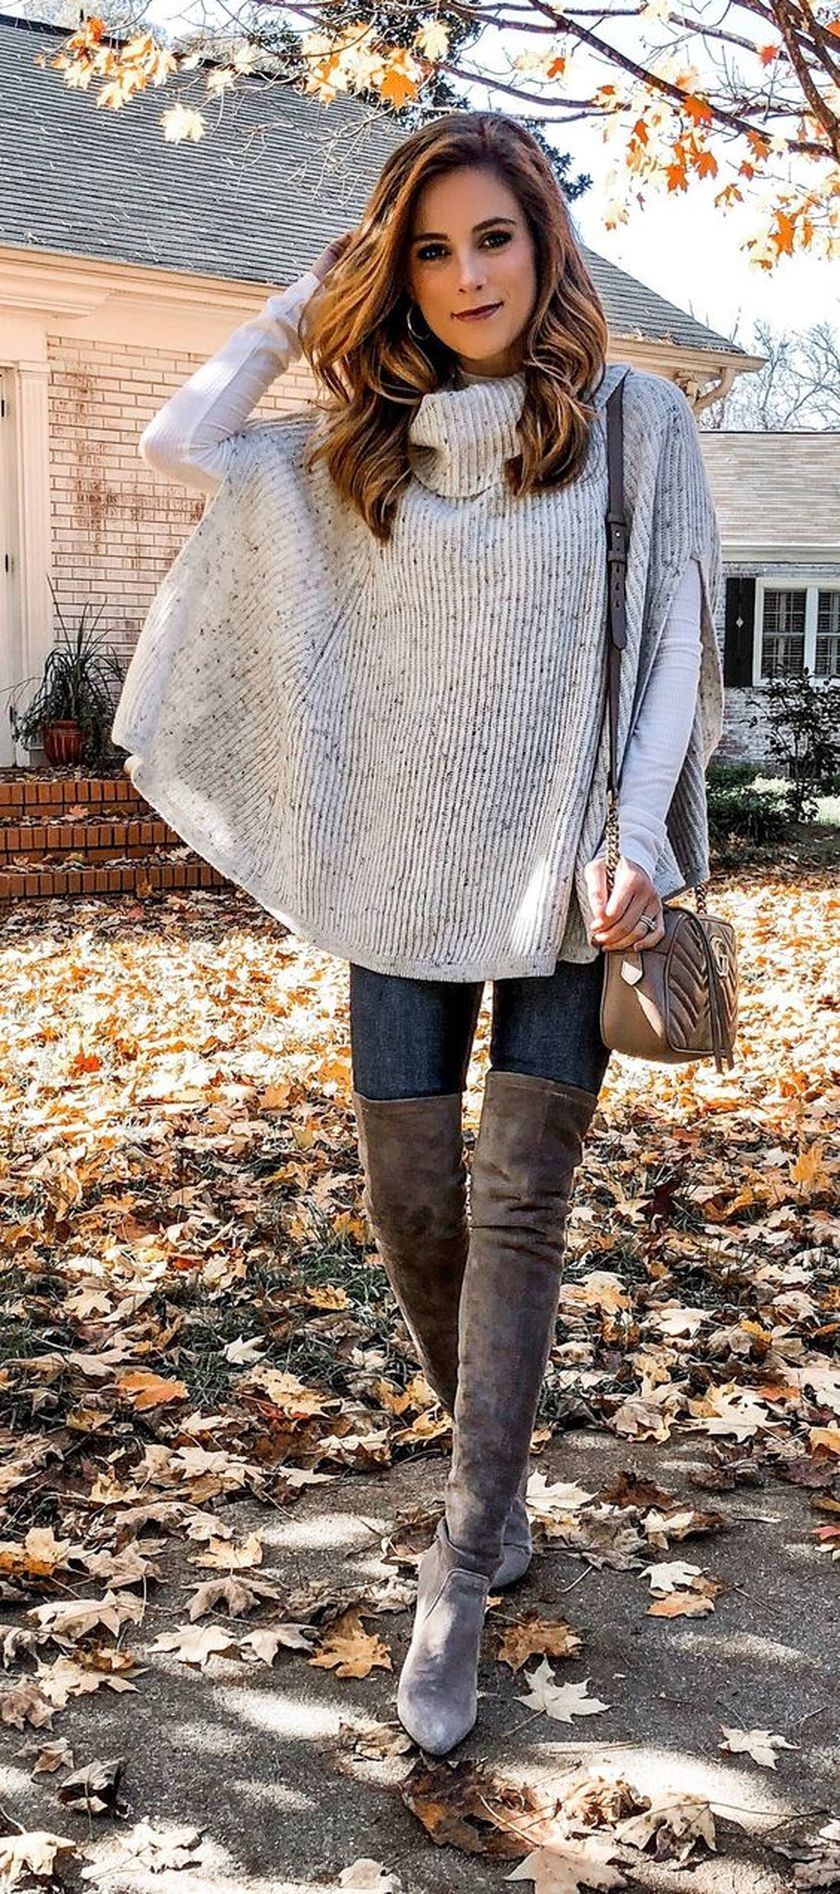 25 Breathtaking Fall Outfits To Look Fantastic